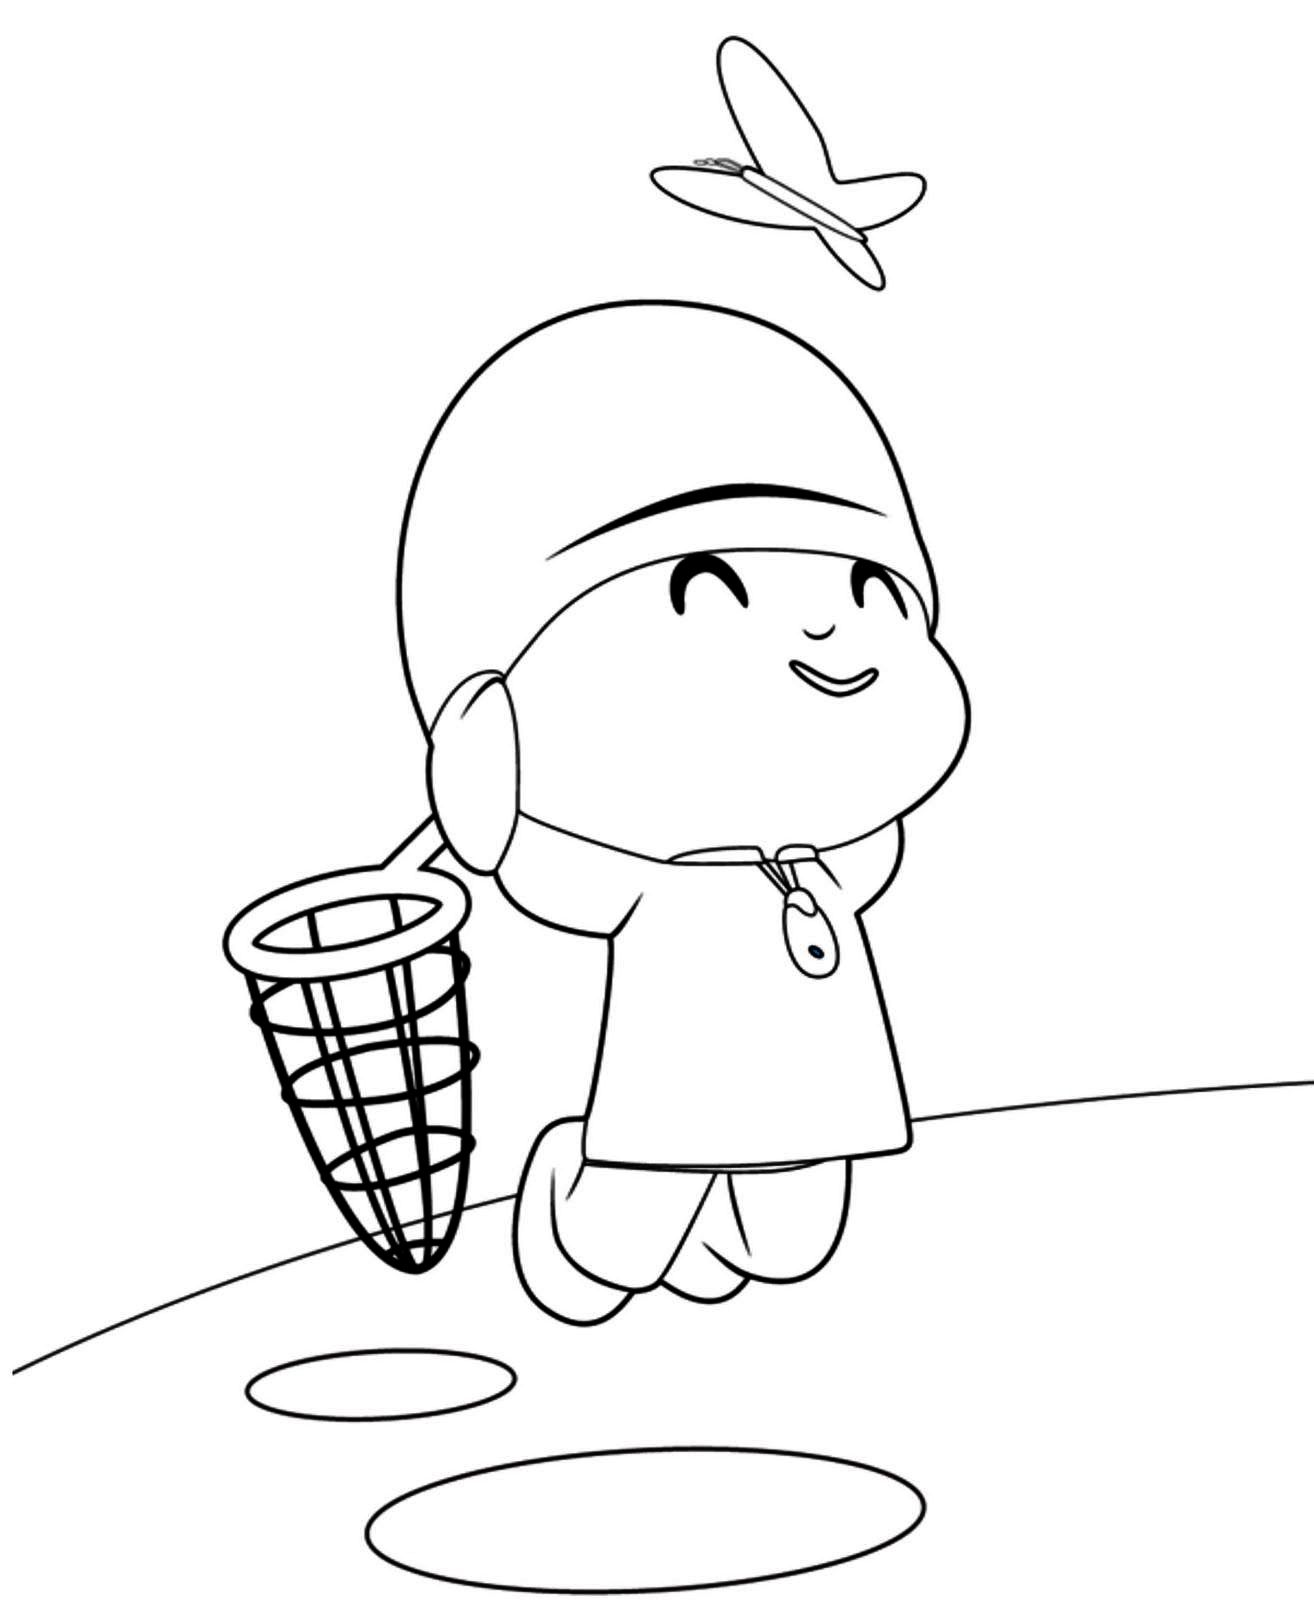 Ness Coloring Pages